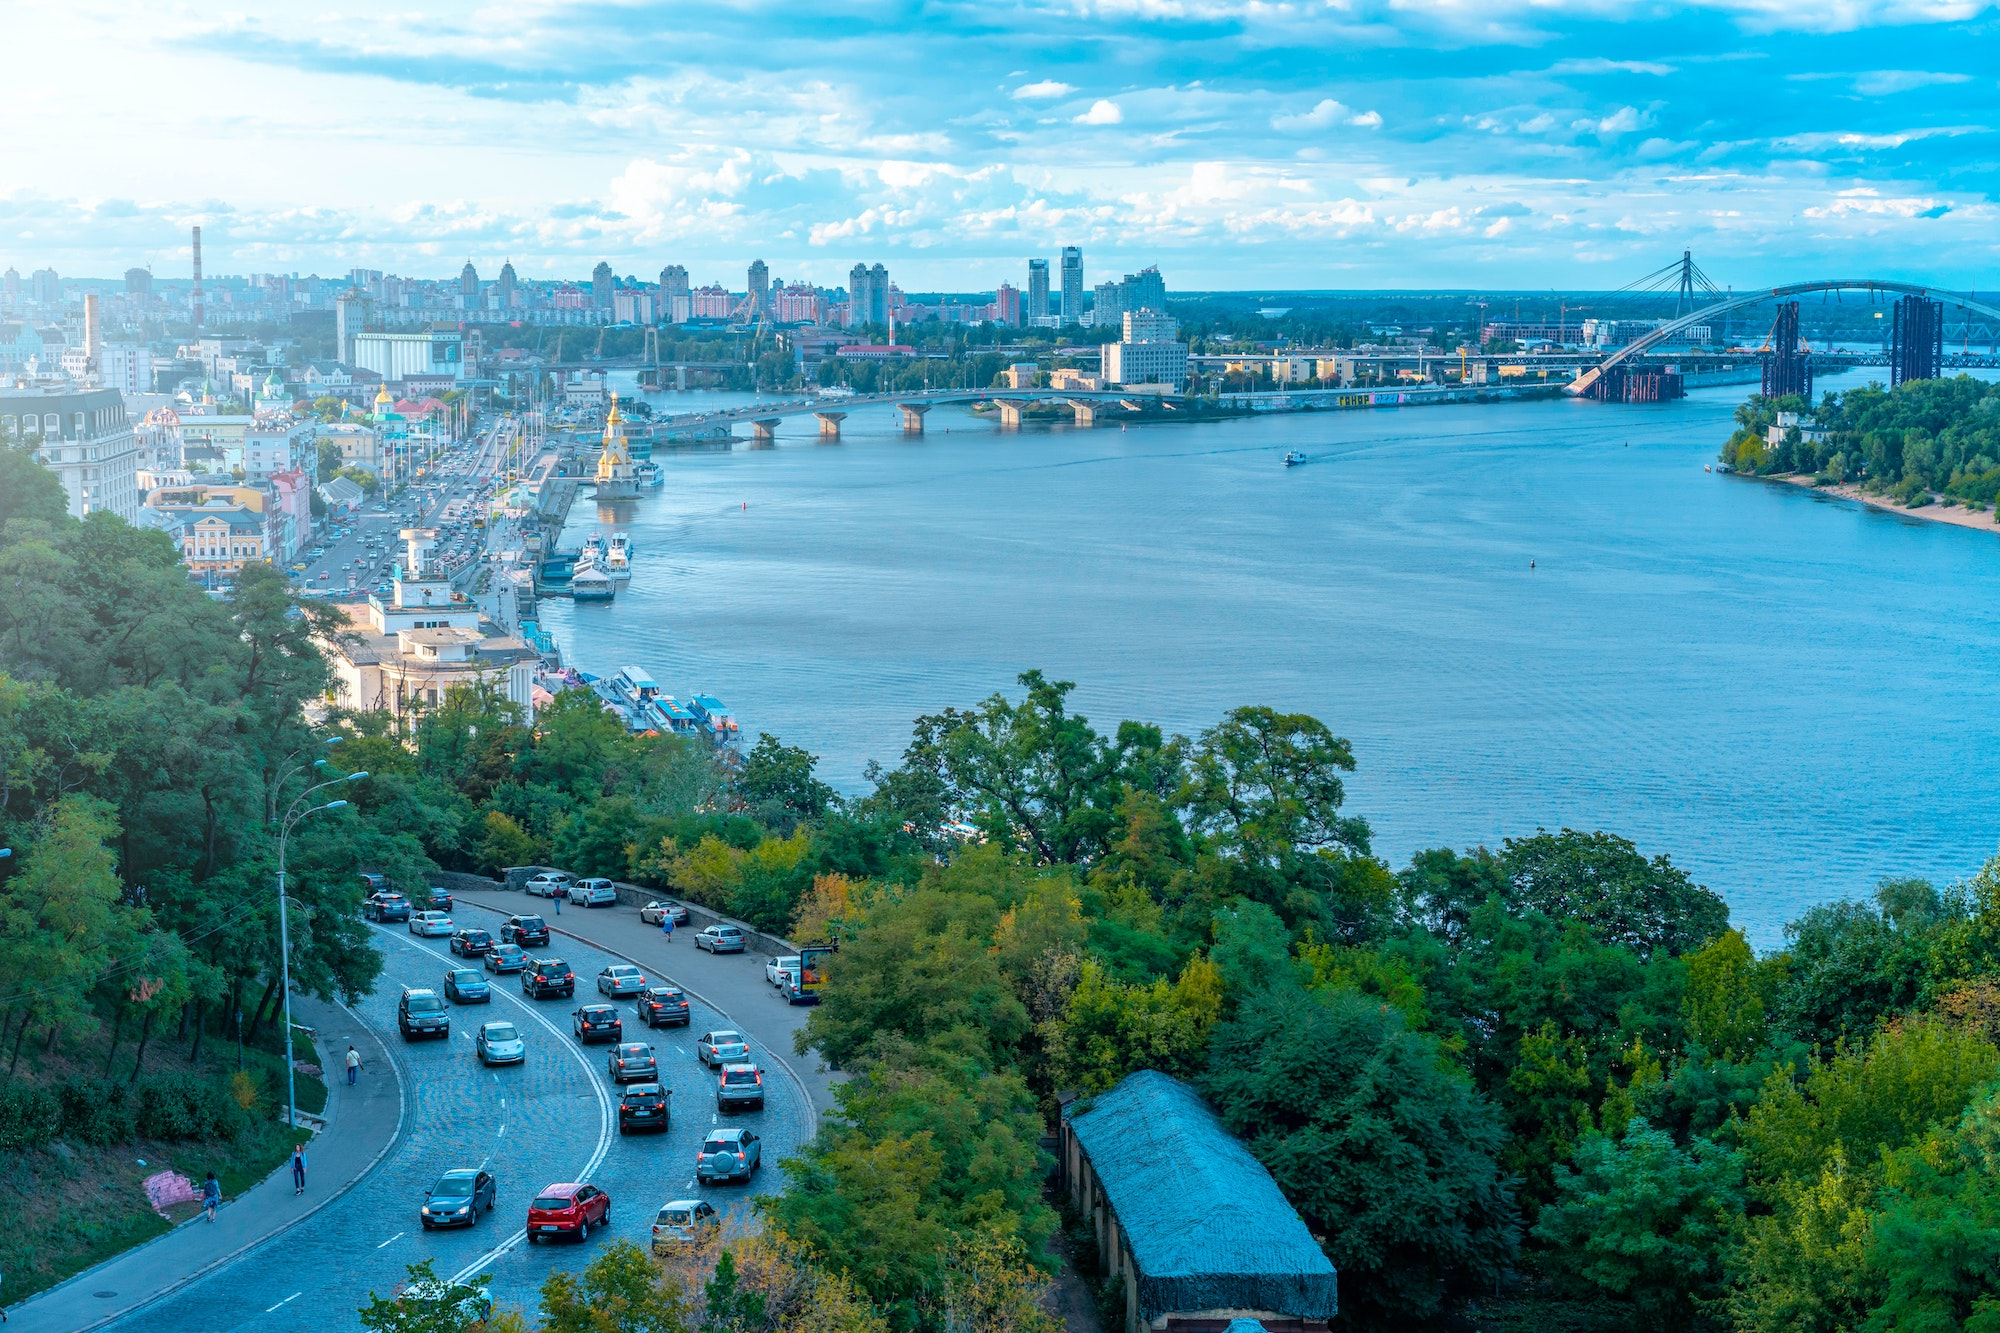 Ukraine is the perfect place for expats or teachers looking for a comfortable mix of familiar and novel